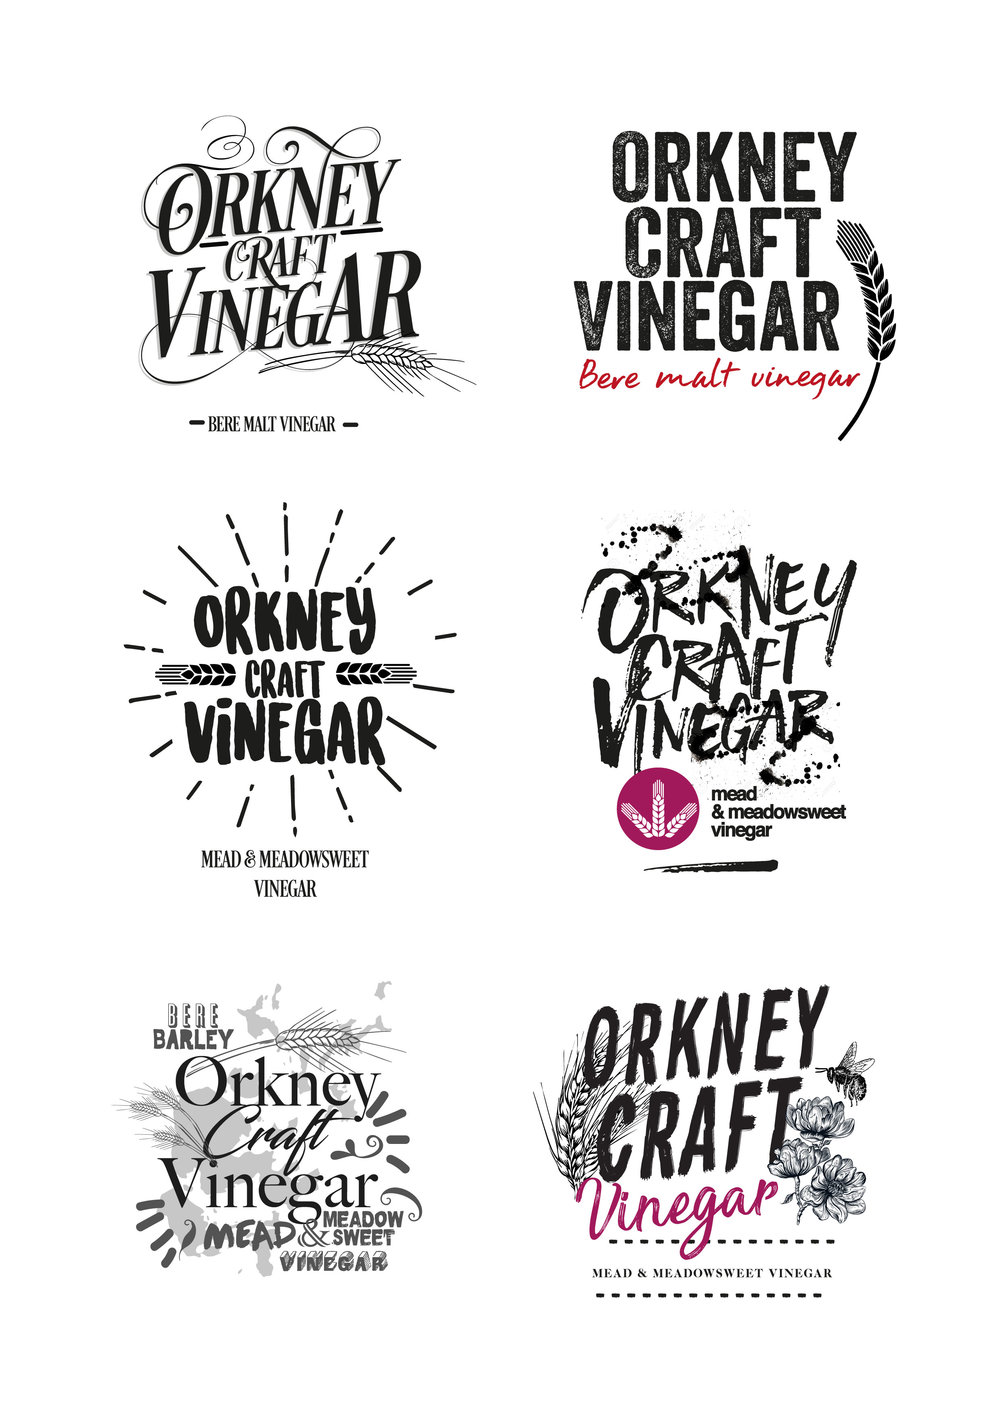 Orkney Craft Vinegar ideas-01.jpg